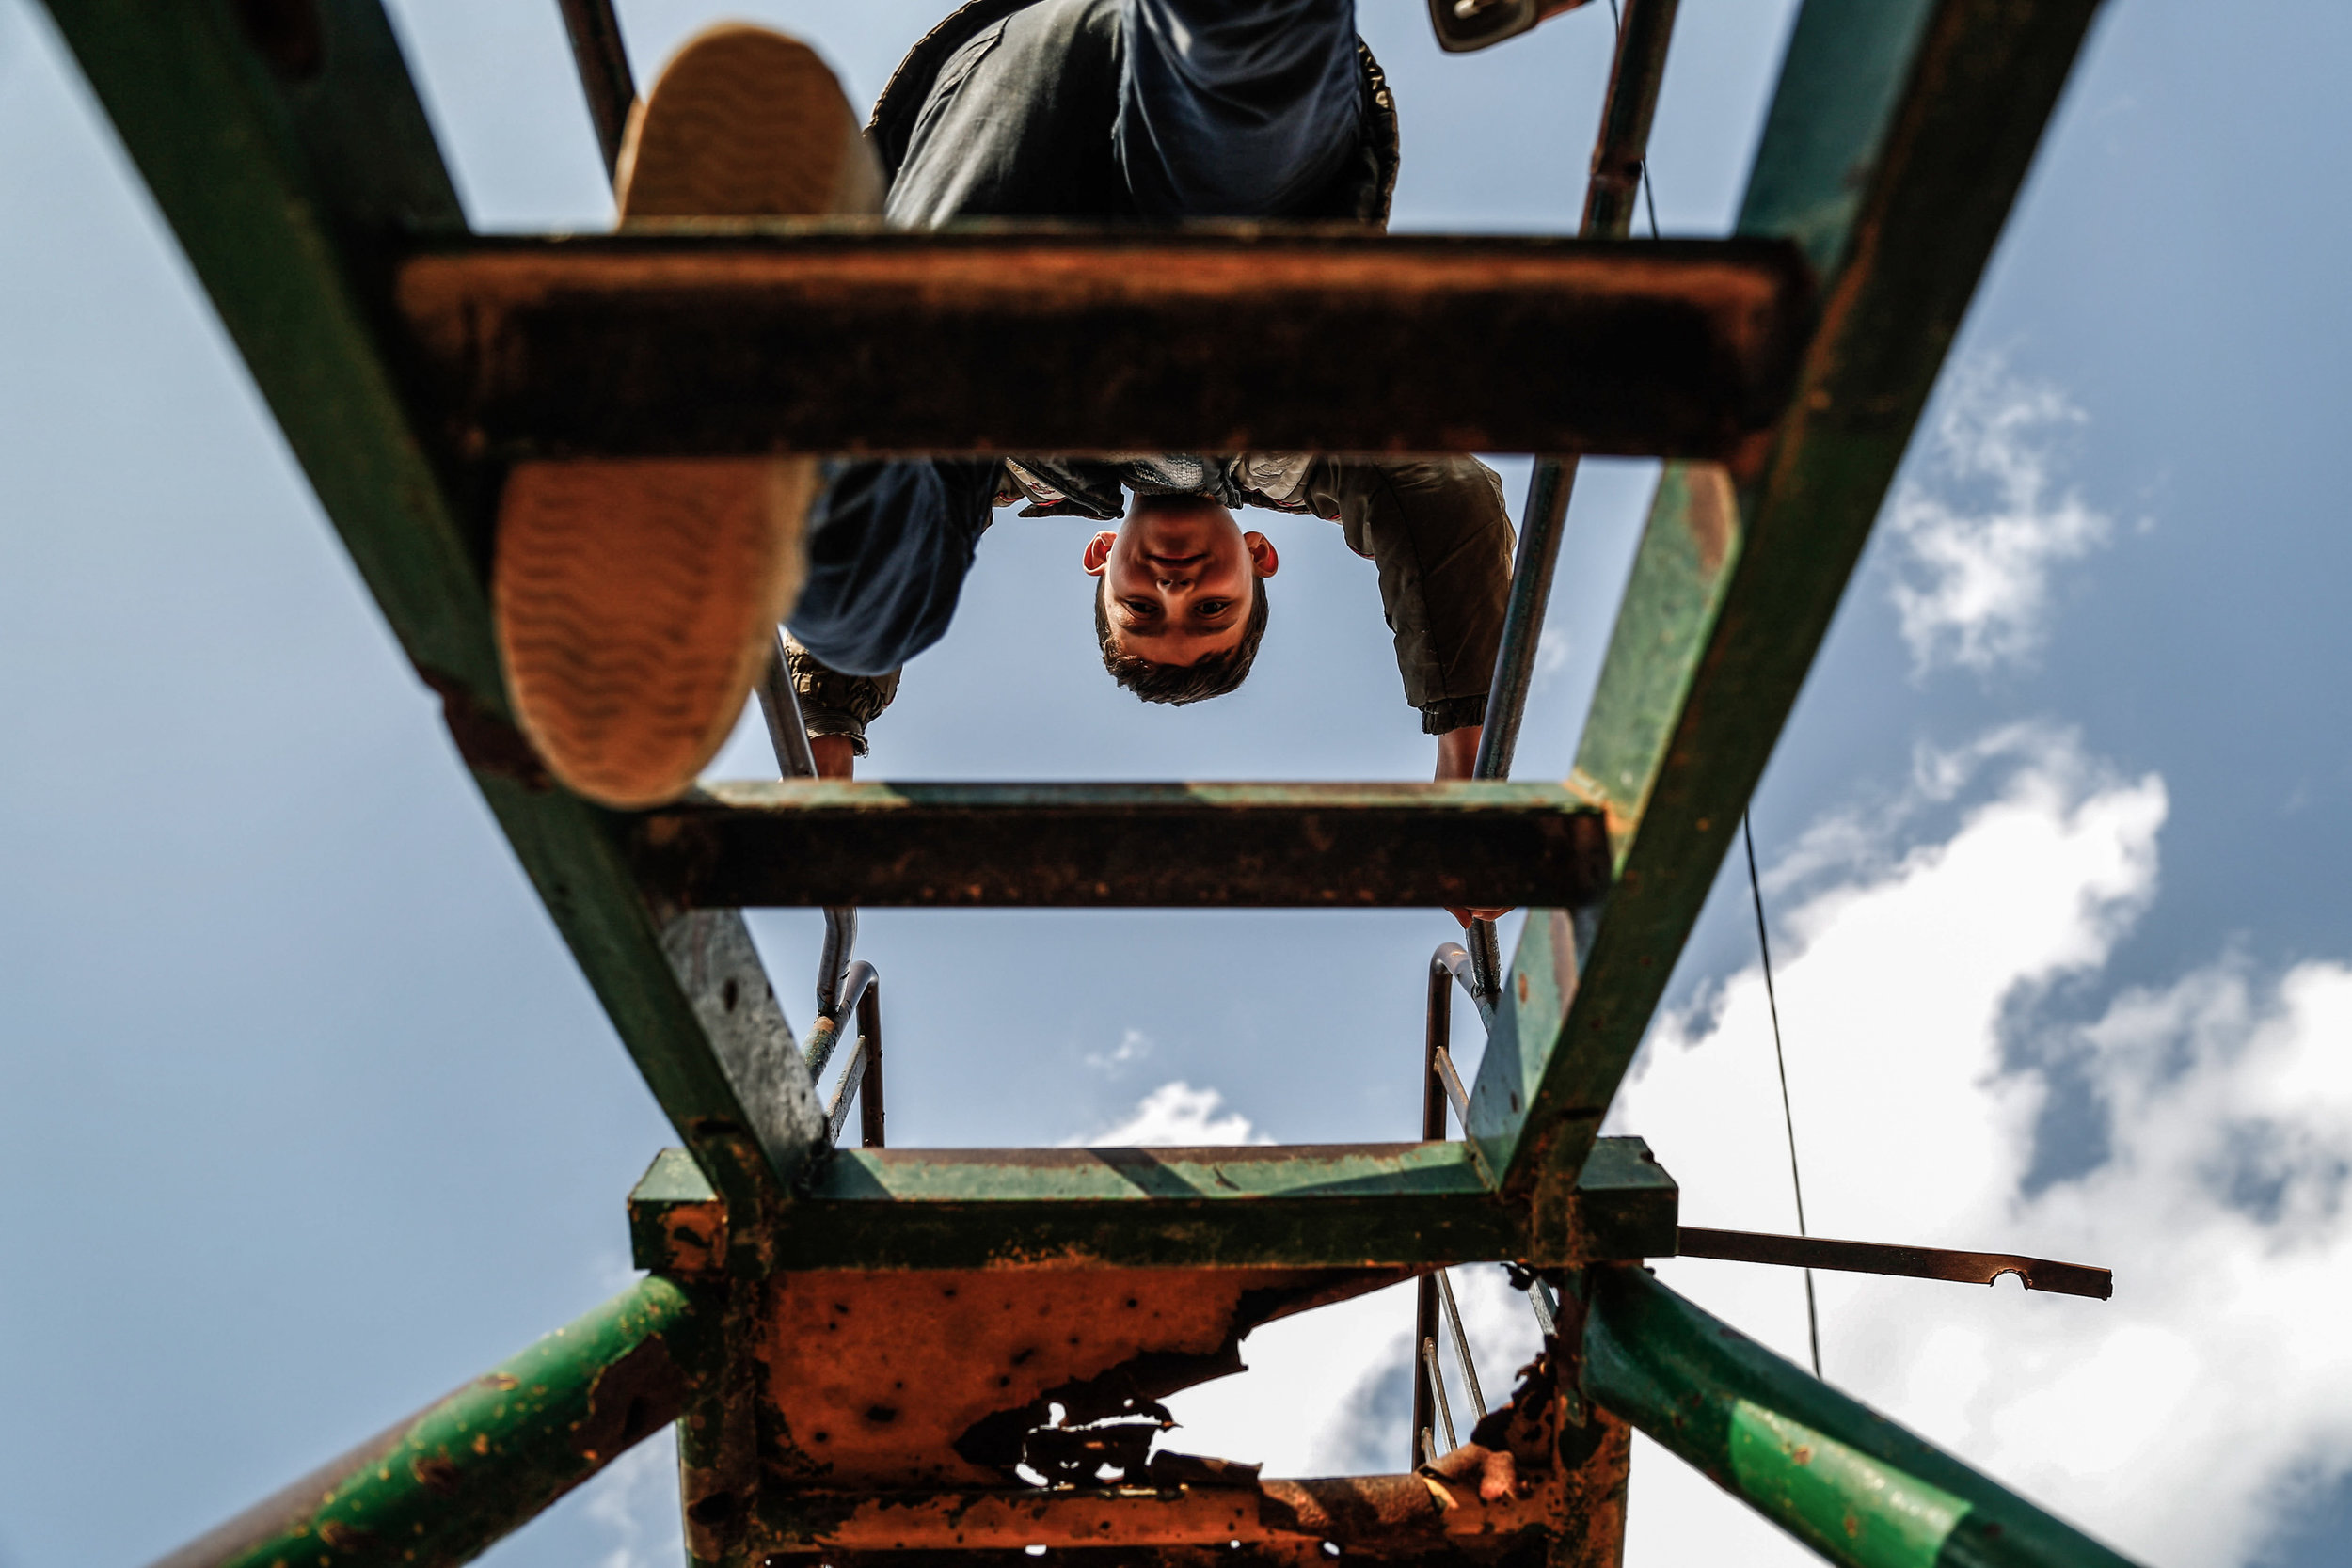 - A boy climbs a slide at a park in the city of Douma, on the eastern edges of the capital Damascus on February 27, 2016, on the first day of the landmark ceasefire agreement.